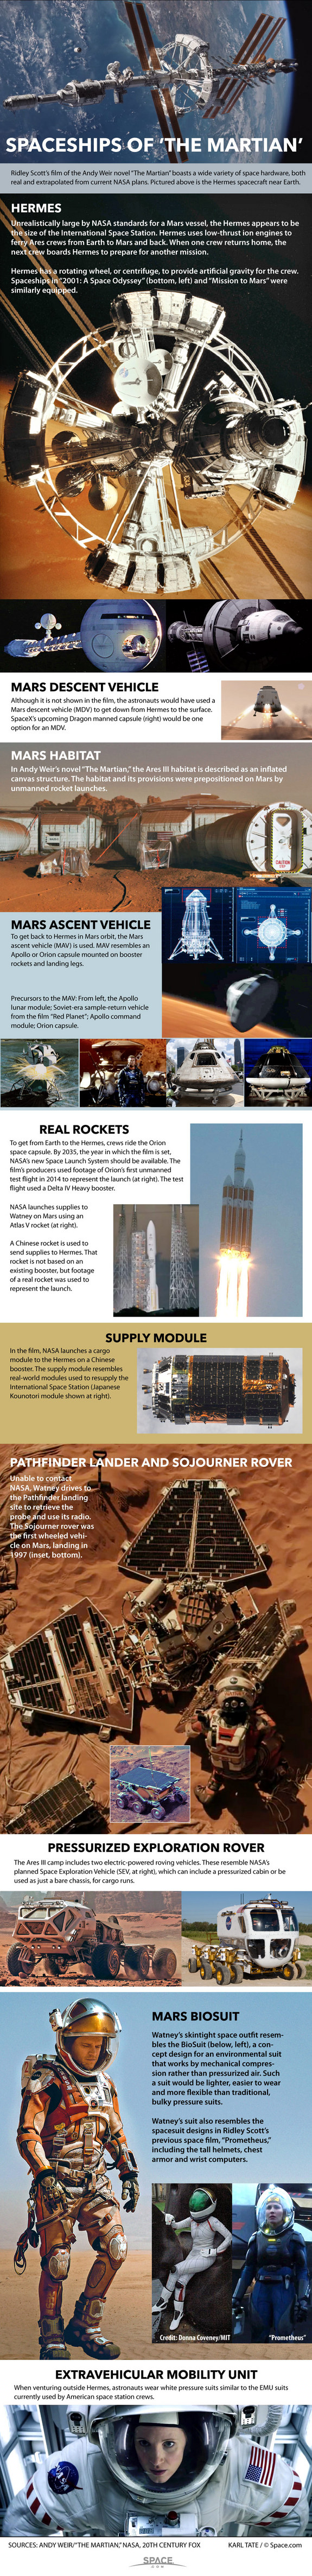 """Ridley Scott's epic space film """"The Martian"""" showcases a lot of space hardware derived from actual NASA plans for interplanetary travel. <a href=""""http://www.space.com/30739-the-martian-spaceships-explained-infographic.html"""">See the spaceships of """"The Martian"""" explained here</a>."""